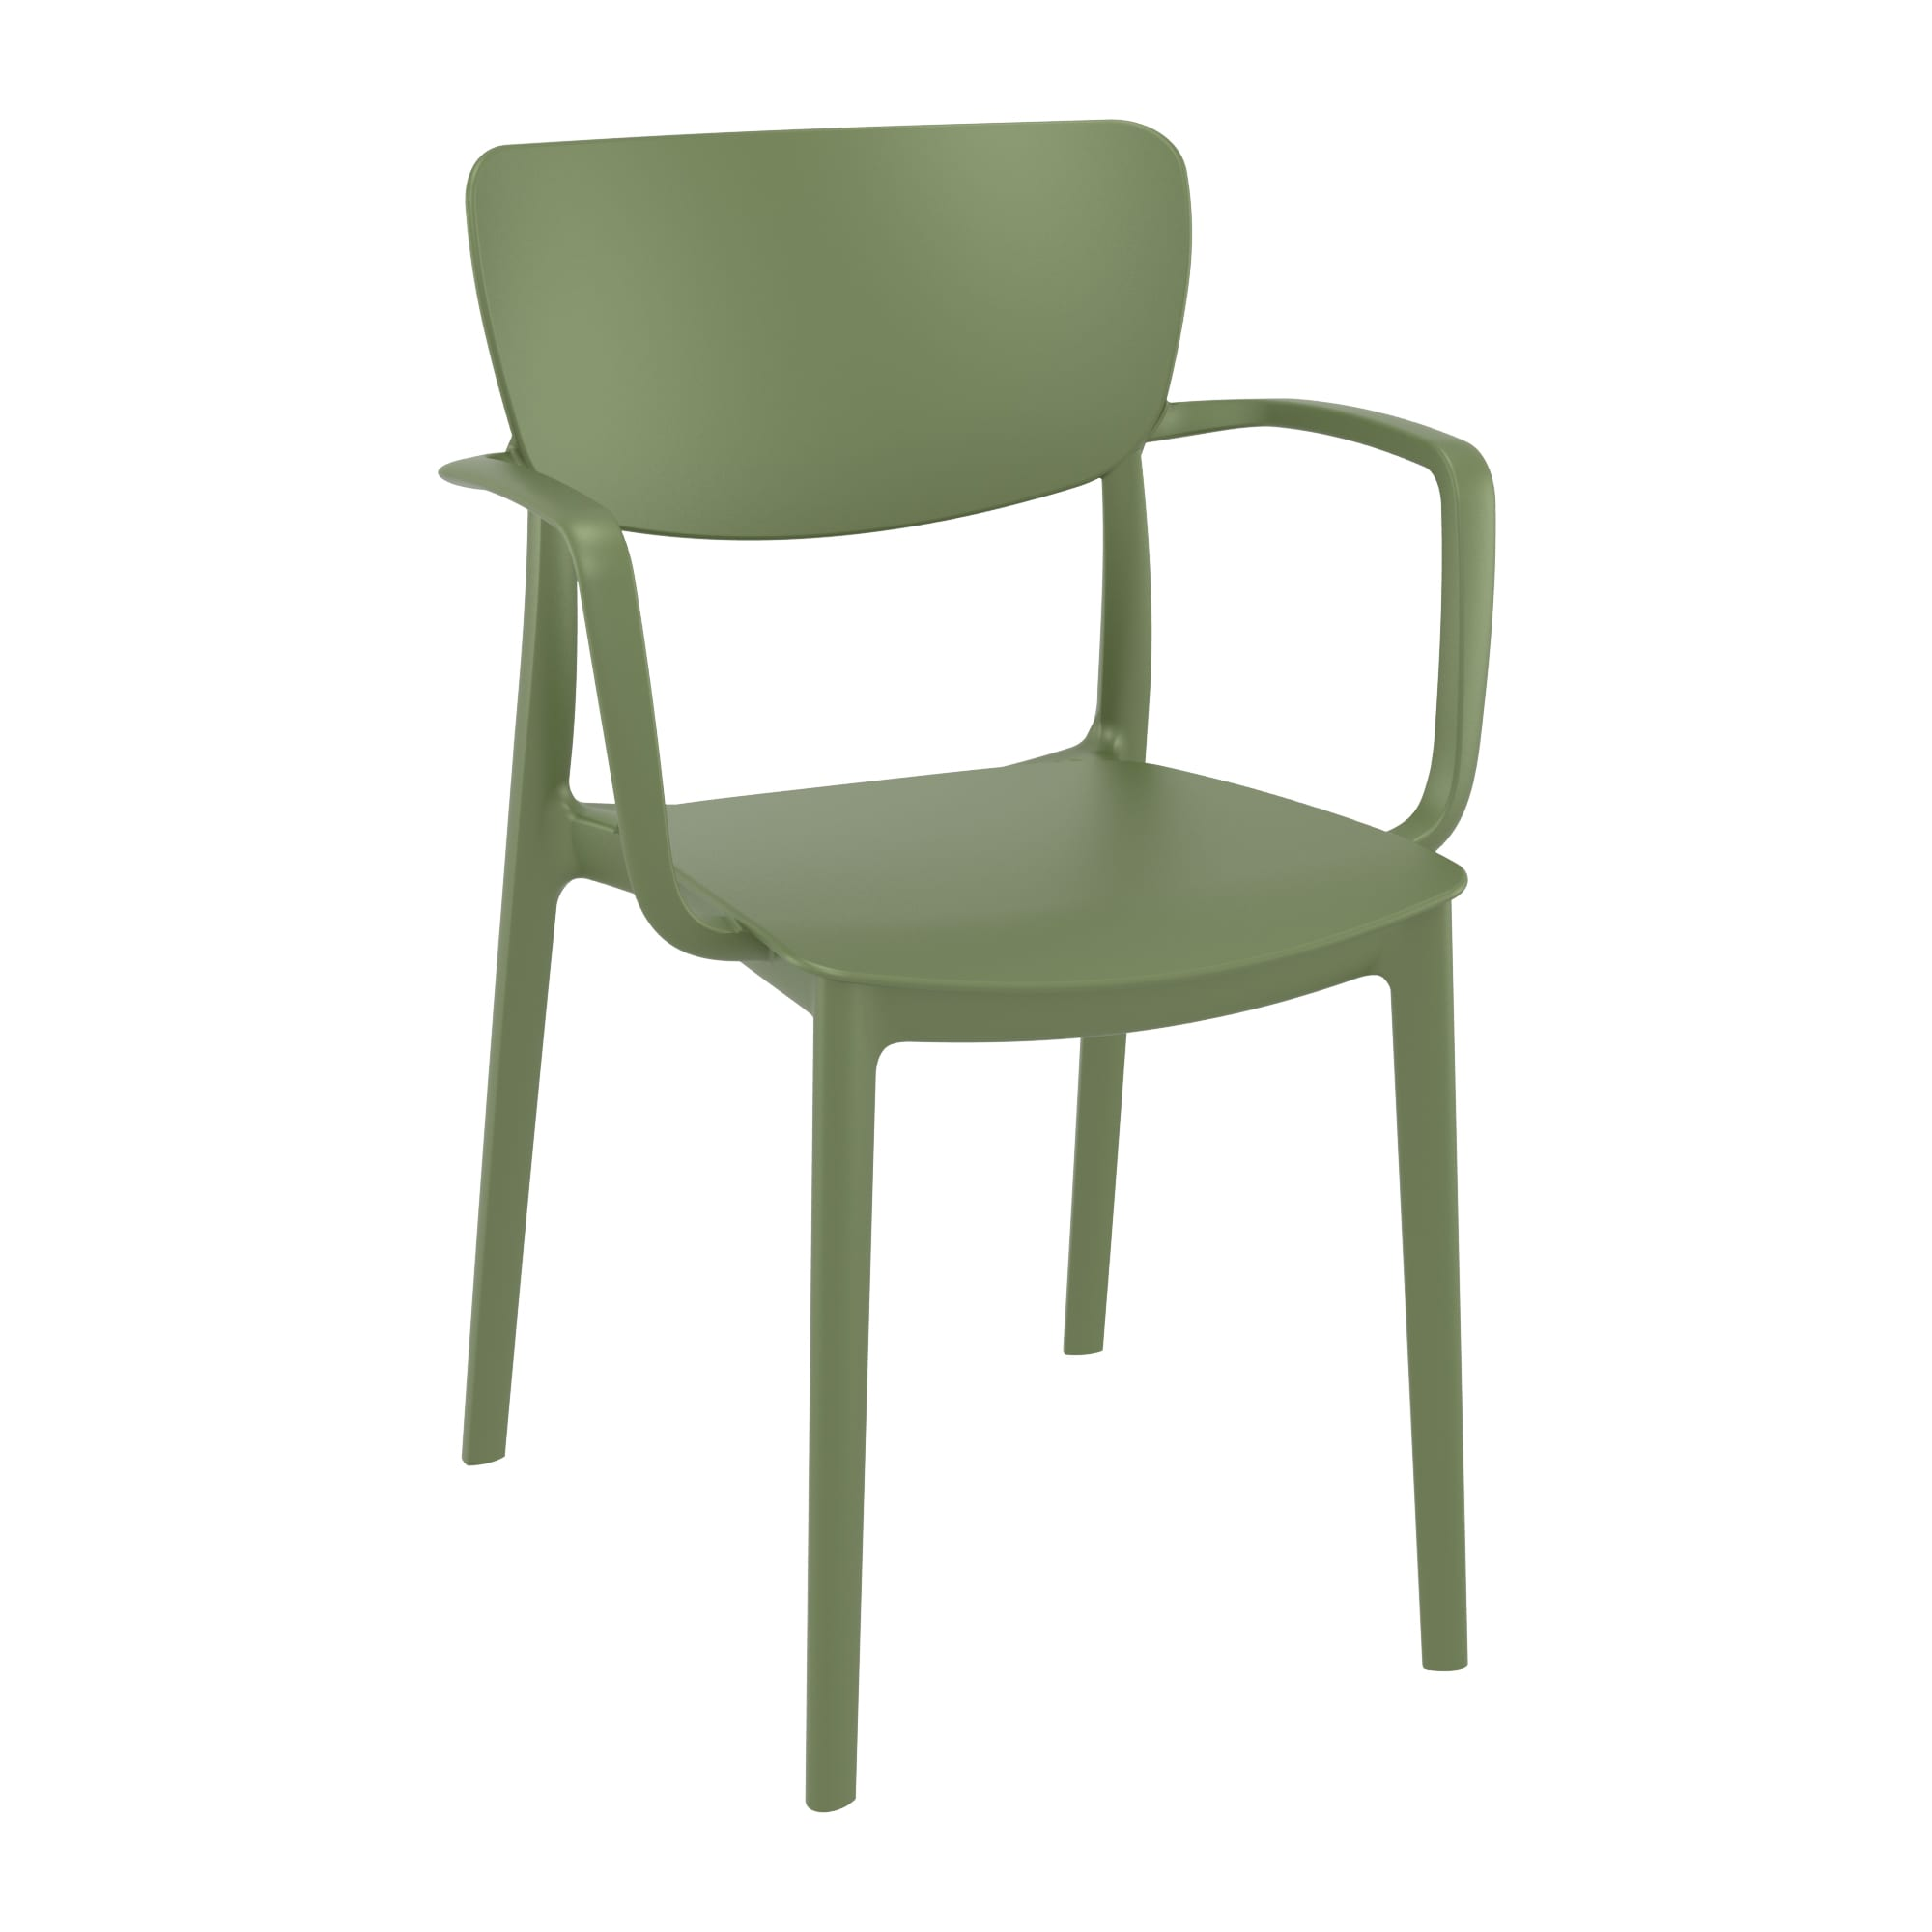 Liss Arm Chair - Olive Green